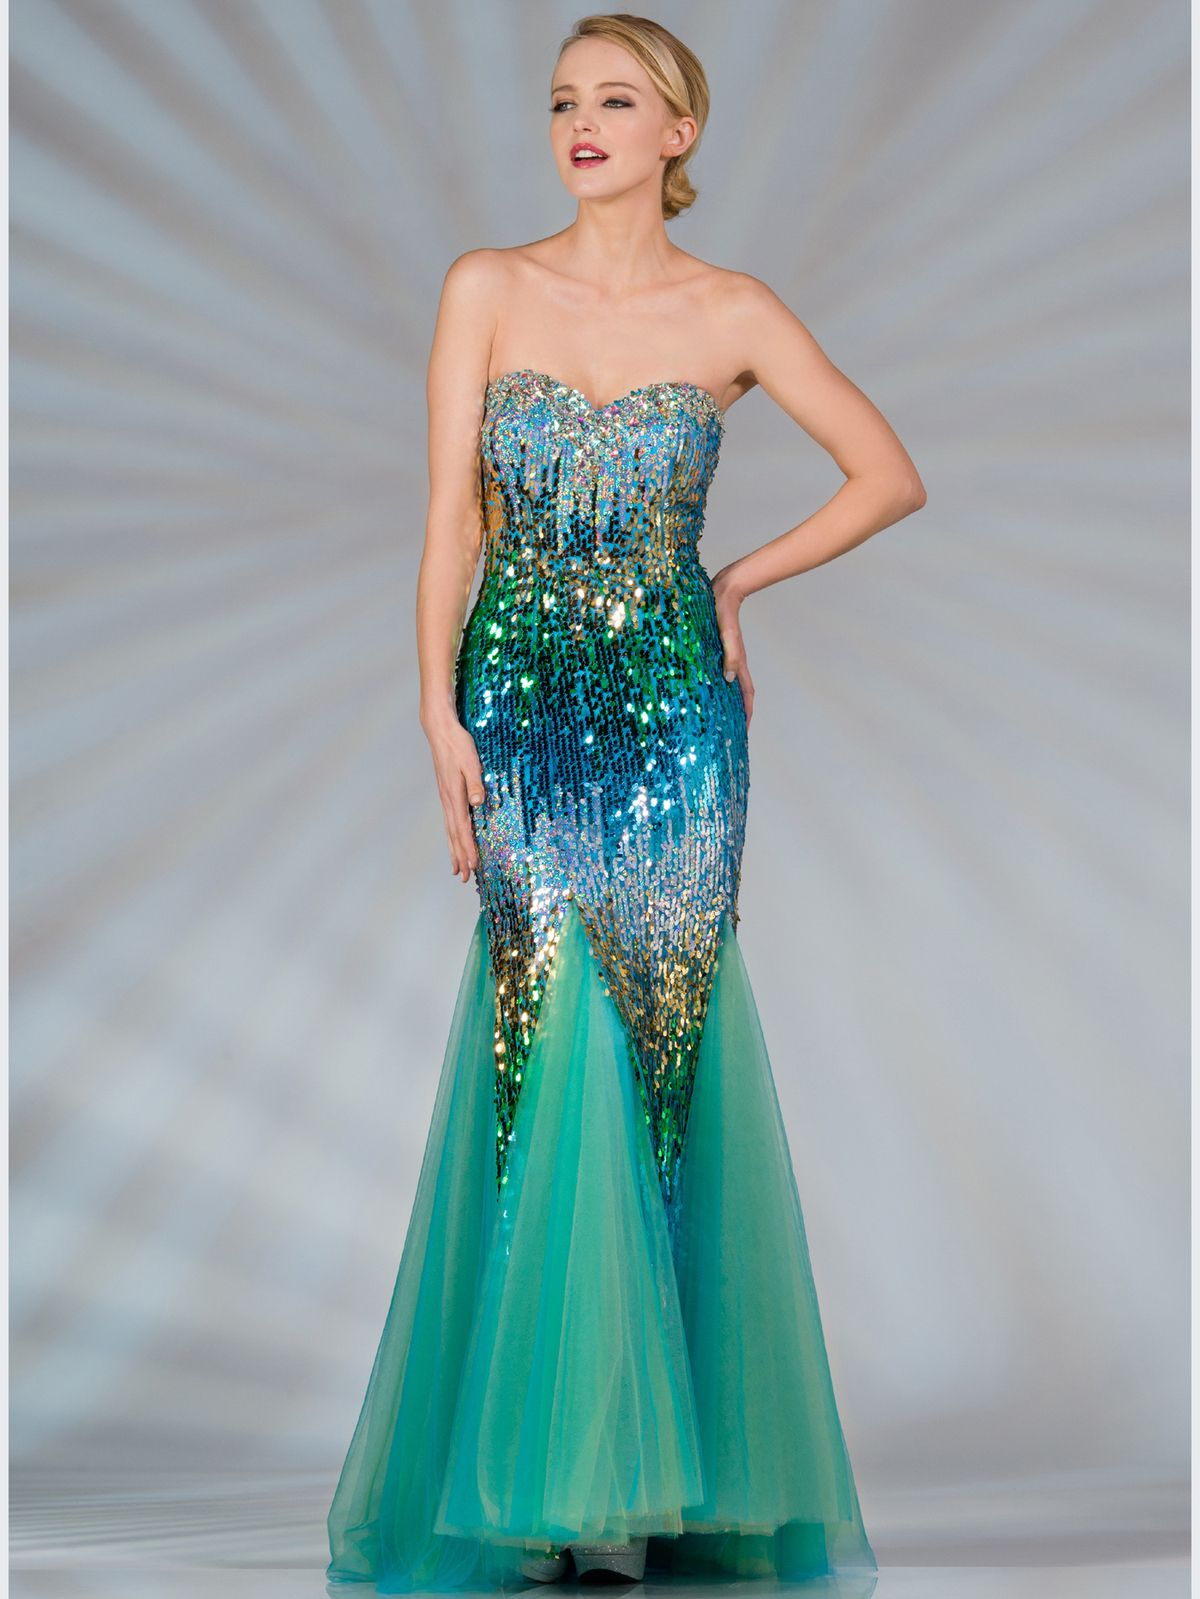 Green mermaid prom dresses